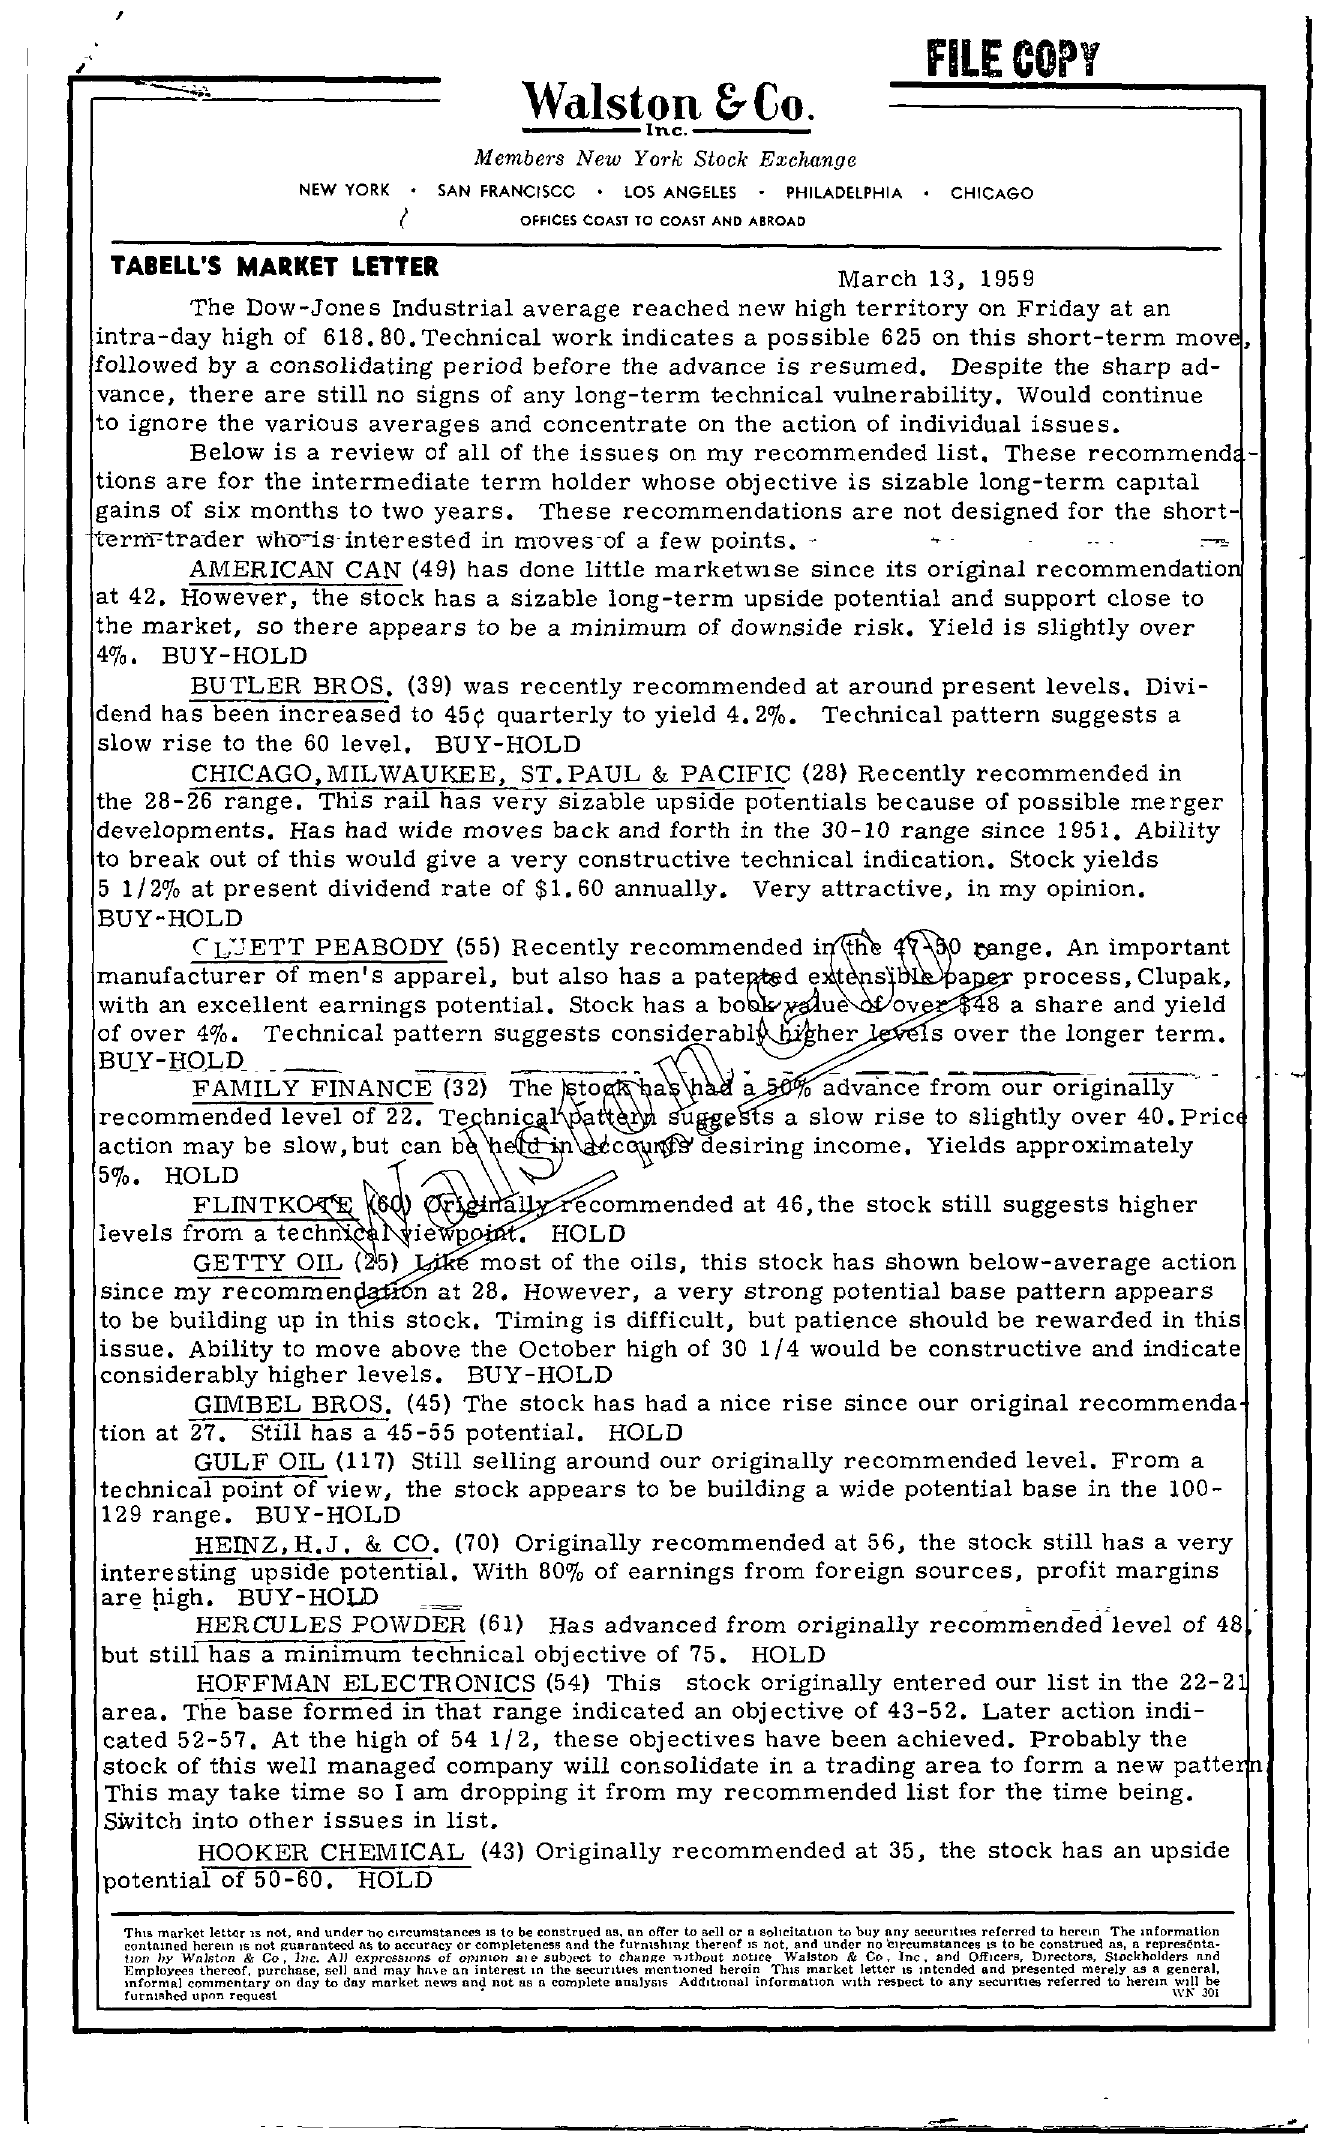 Tabell's Market Letter - March 13, 1959 page 1